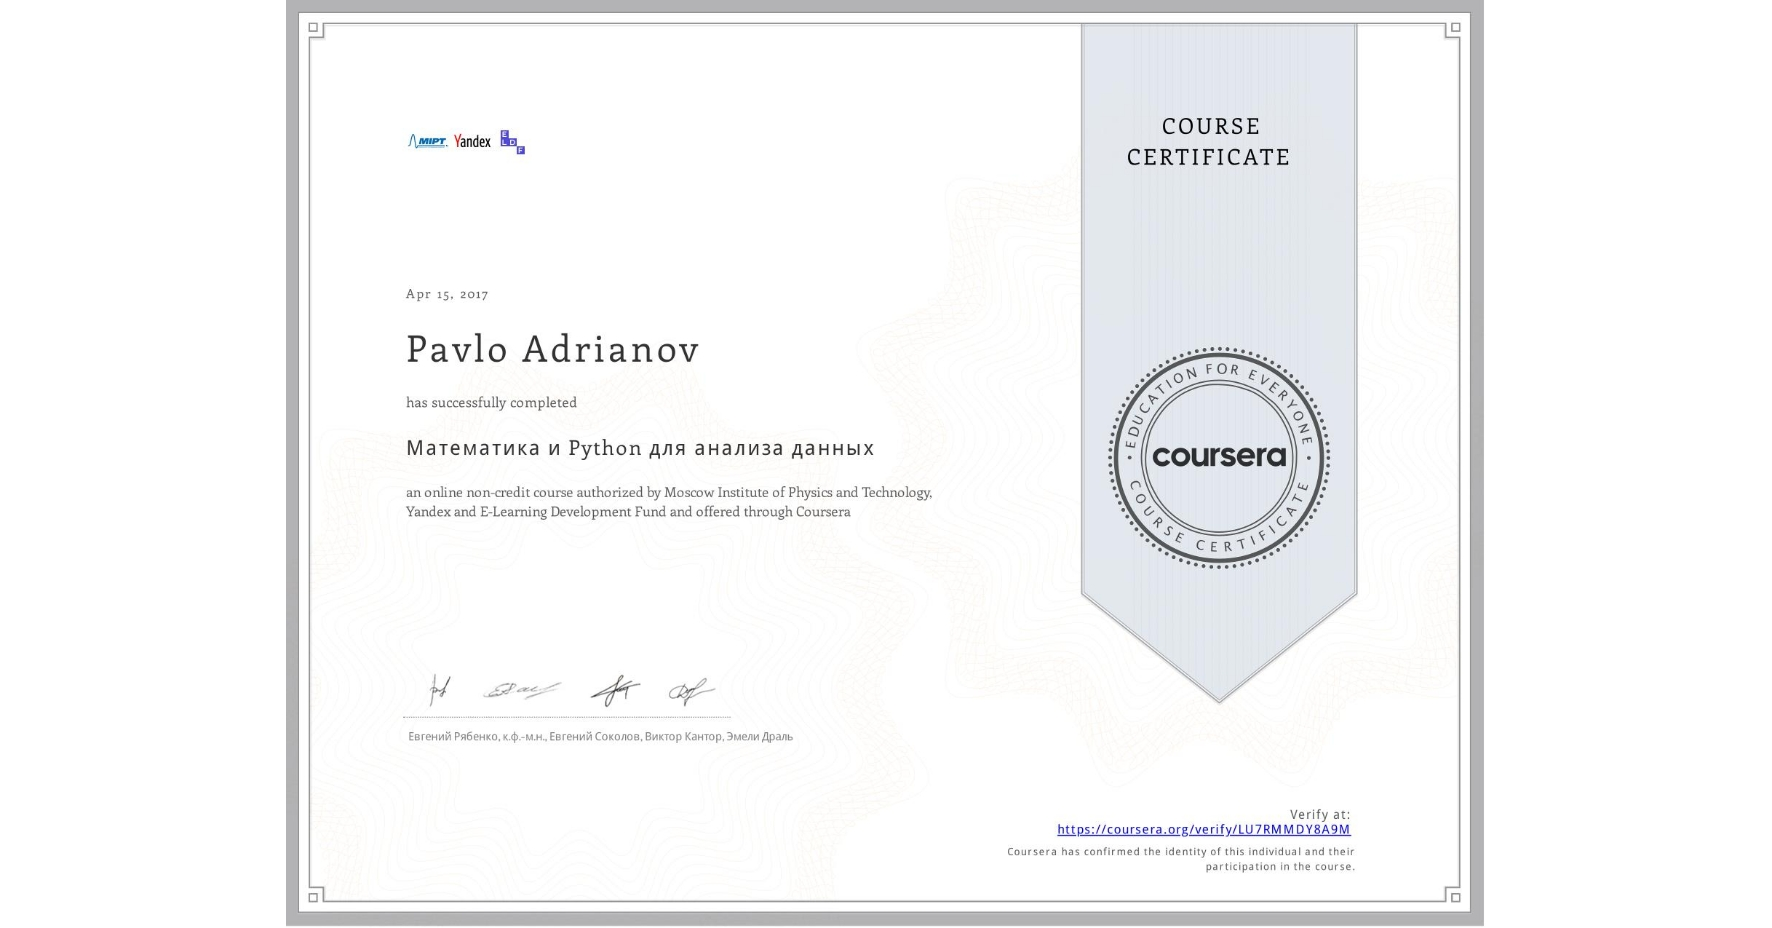 View certificate for Pavlo Adrianov, Математика и Python для анализа данных, an online non-credit course authorized by Moscow Institute of Physics and Technology, Yandex & E-Learning Development Fund and offered through Coursera